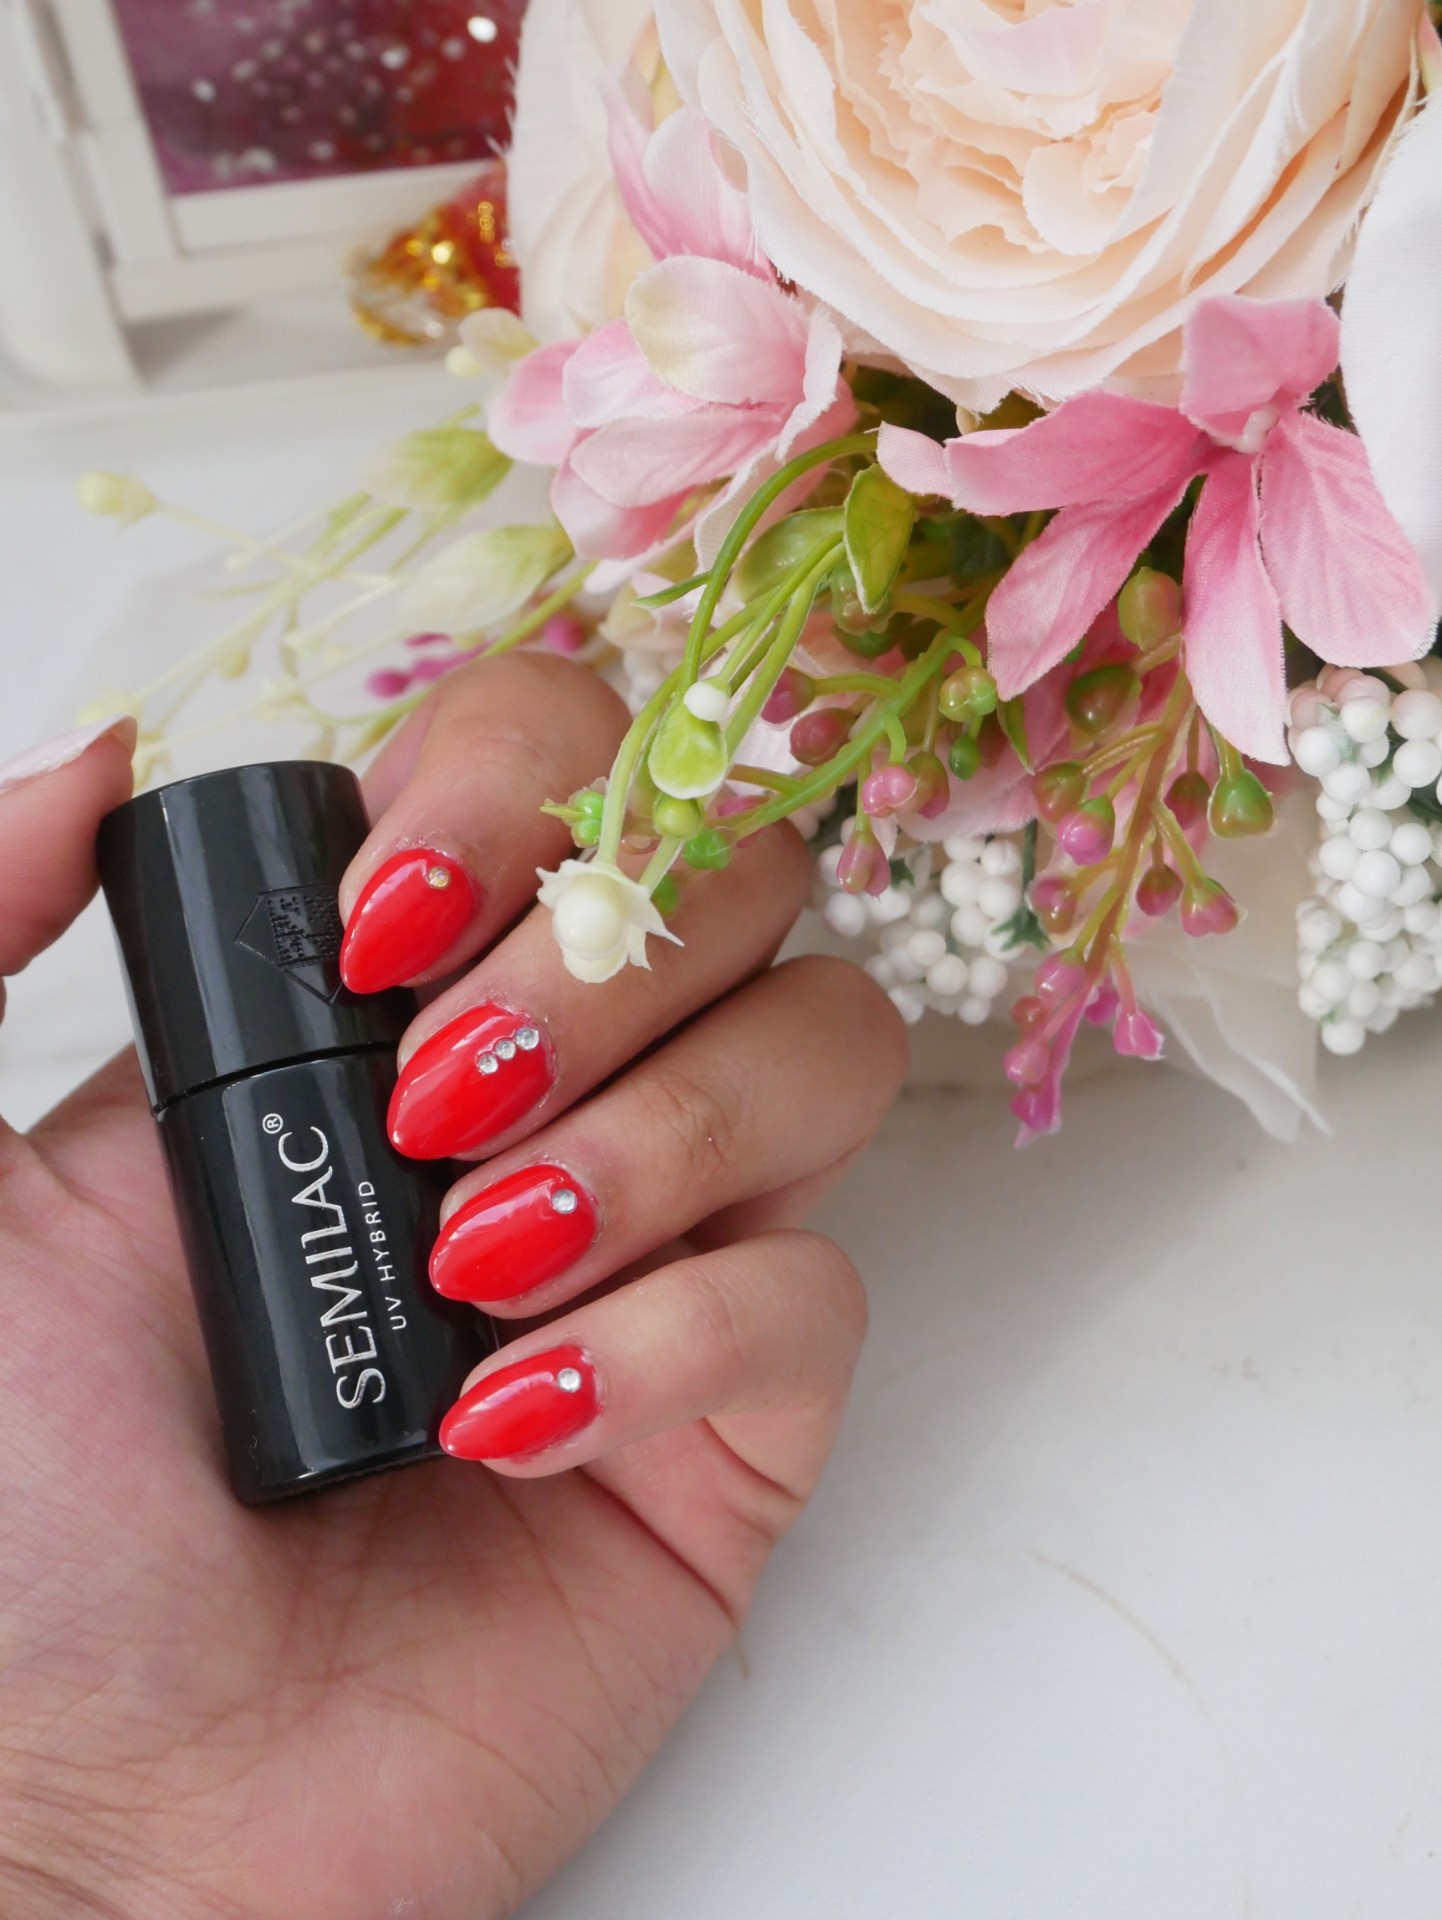 semilac review easy cheap gel nails at home